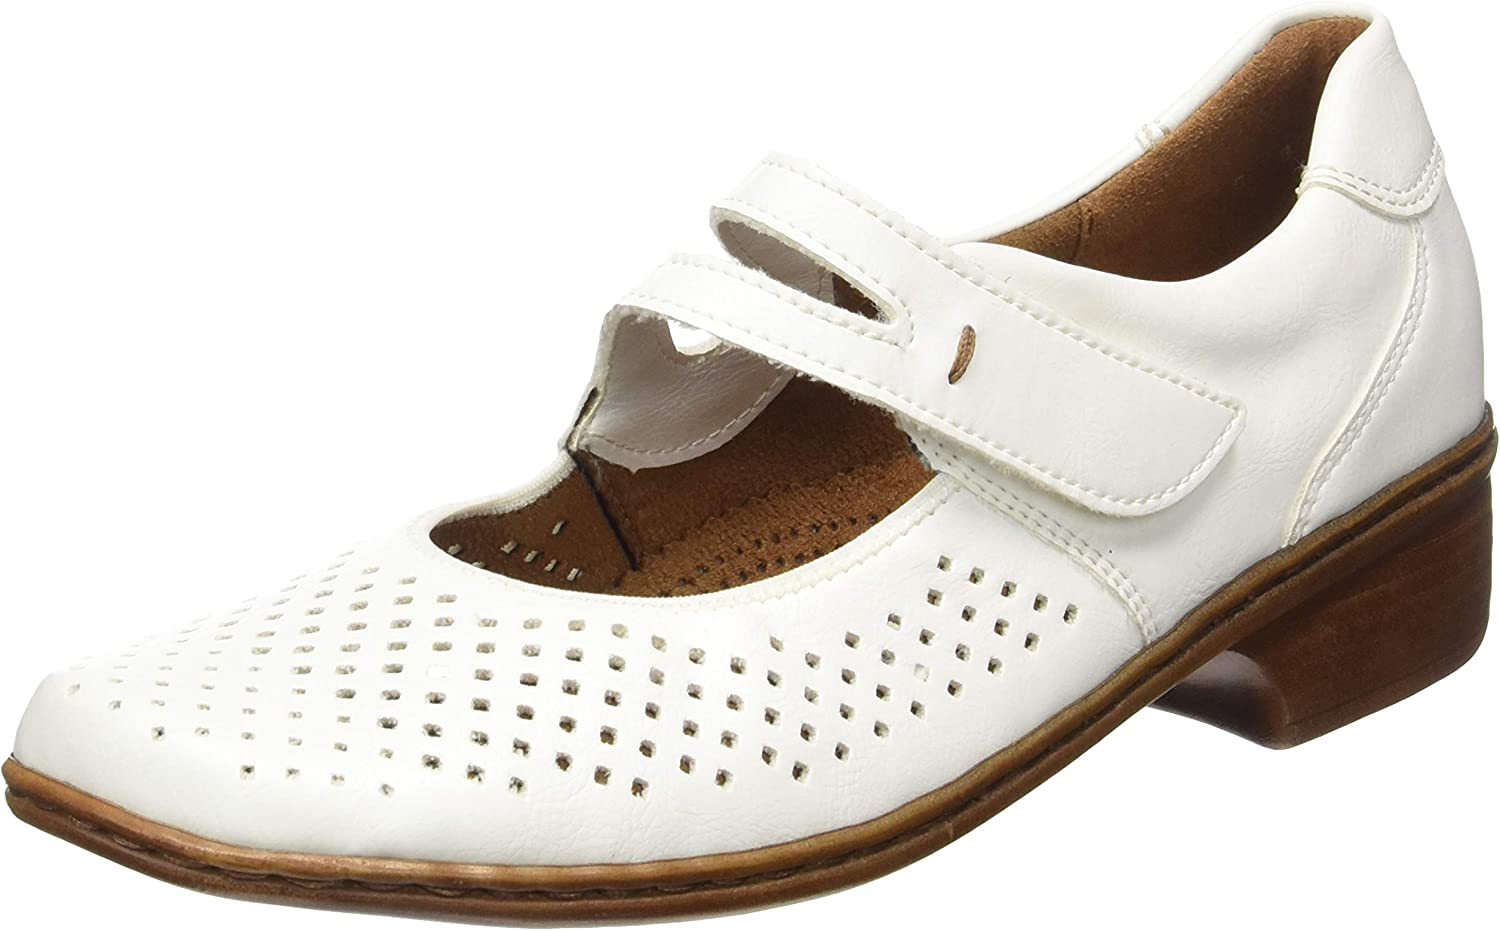 Jenny Women's Rhodos Challenge the lowest price of Japan Loafers OFFicial store 2252705